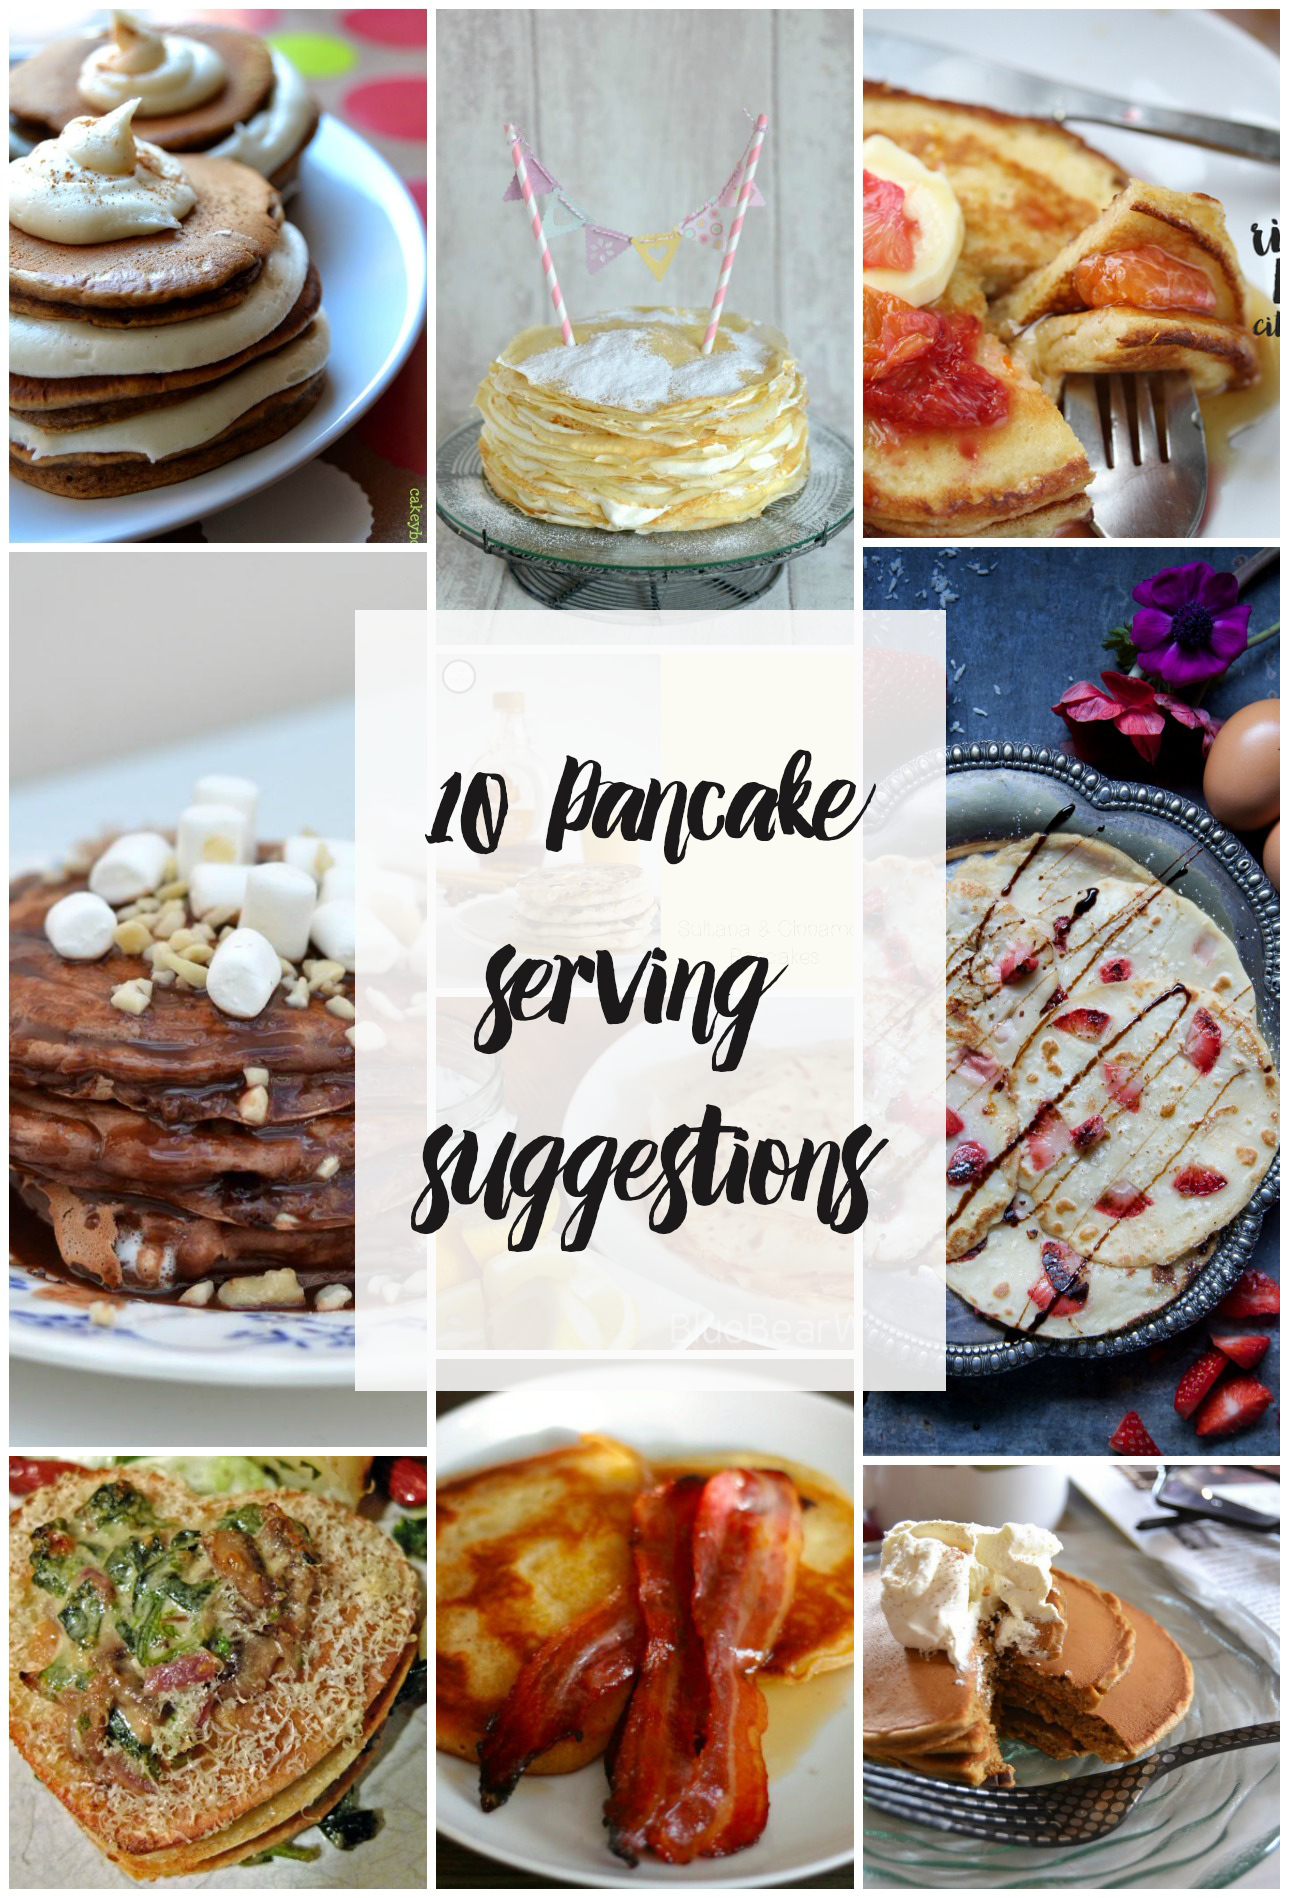 10 Pancake Serving Suggestions